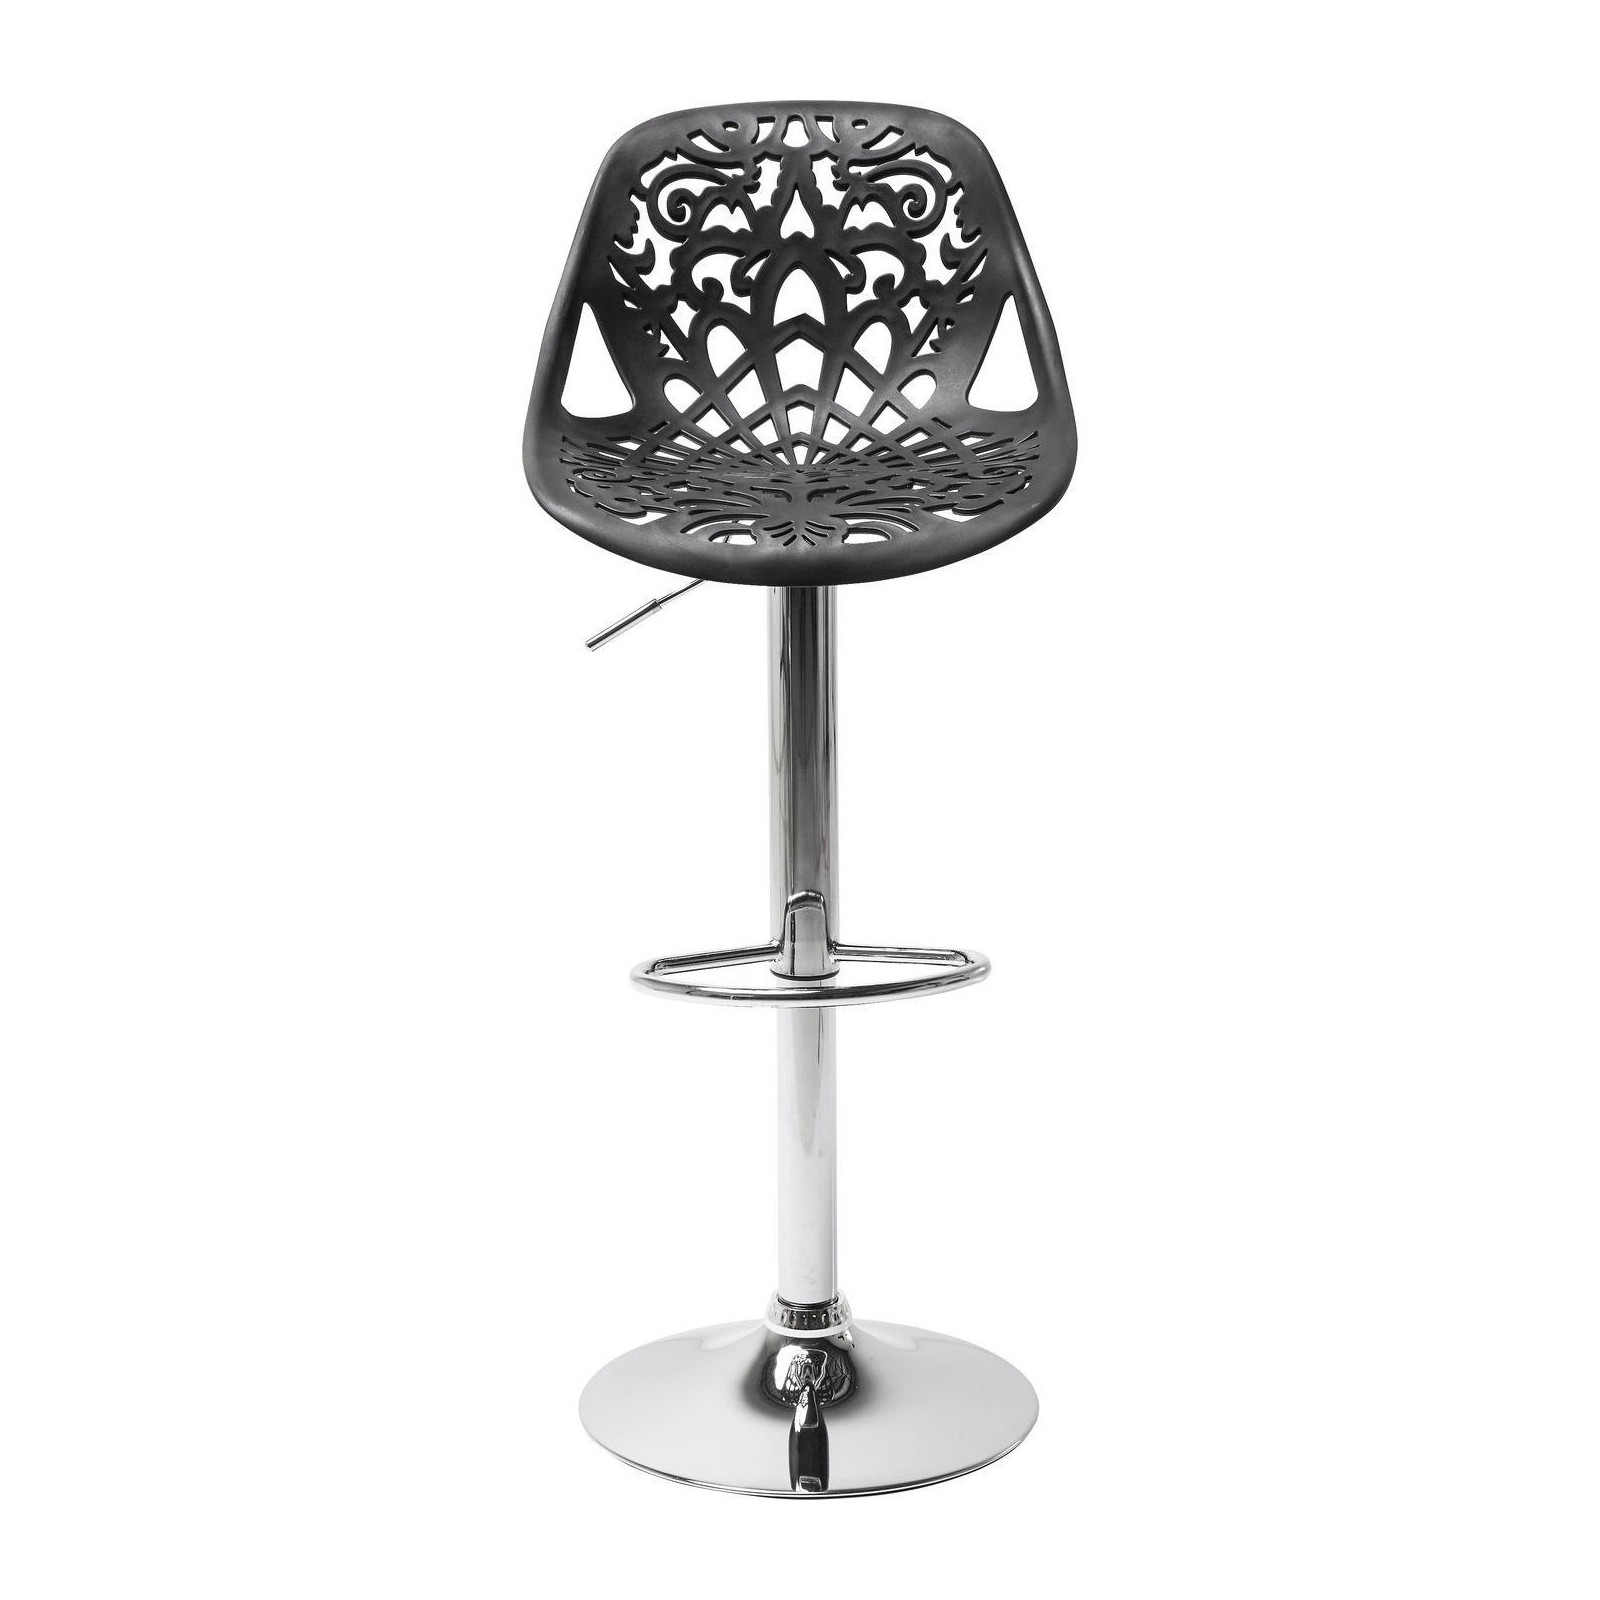 Tabouret de bar ornament noir kare design - Tabouret de bar confortable ...